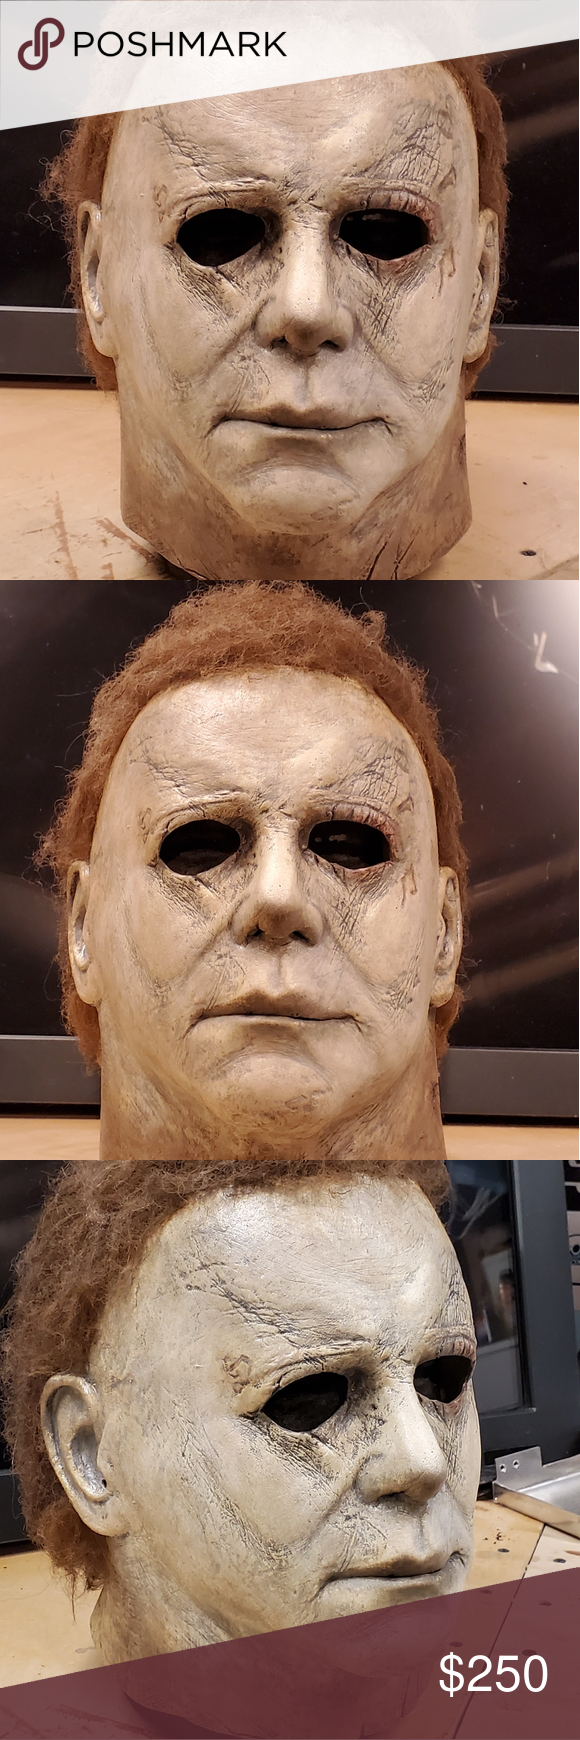 2018 Michael Myers Mask This is a fully customized and